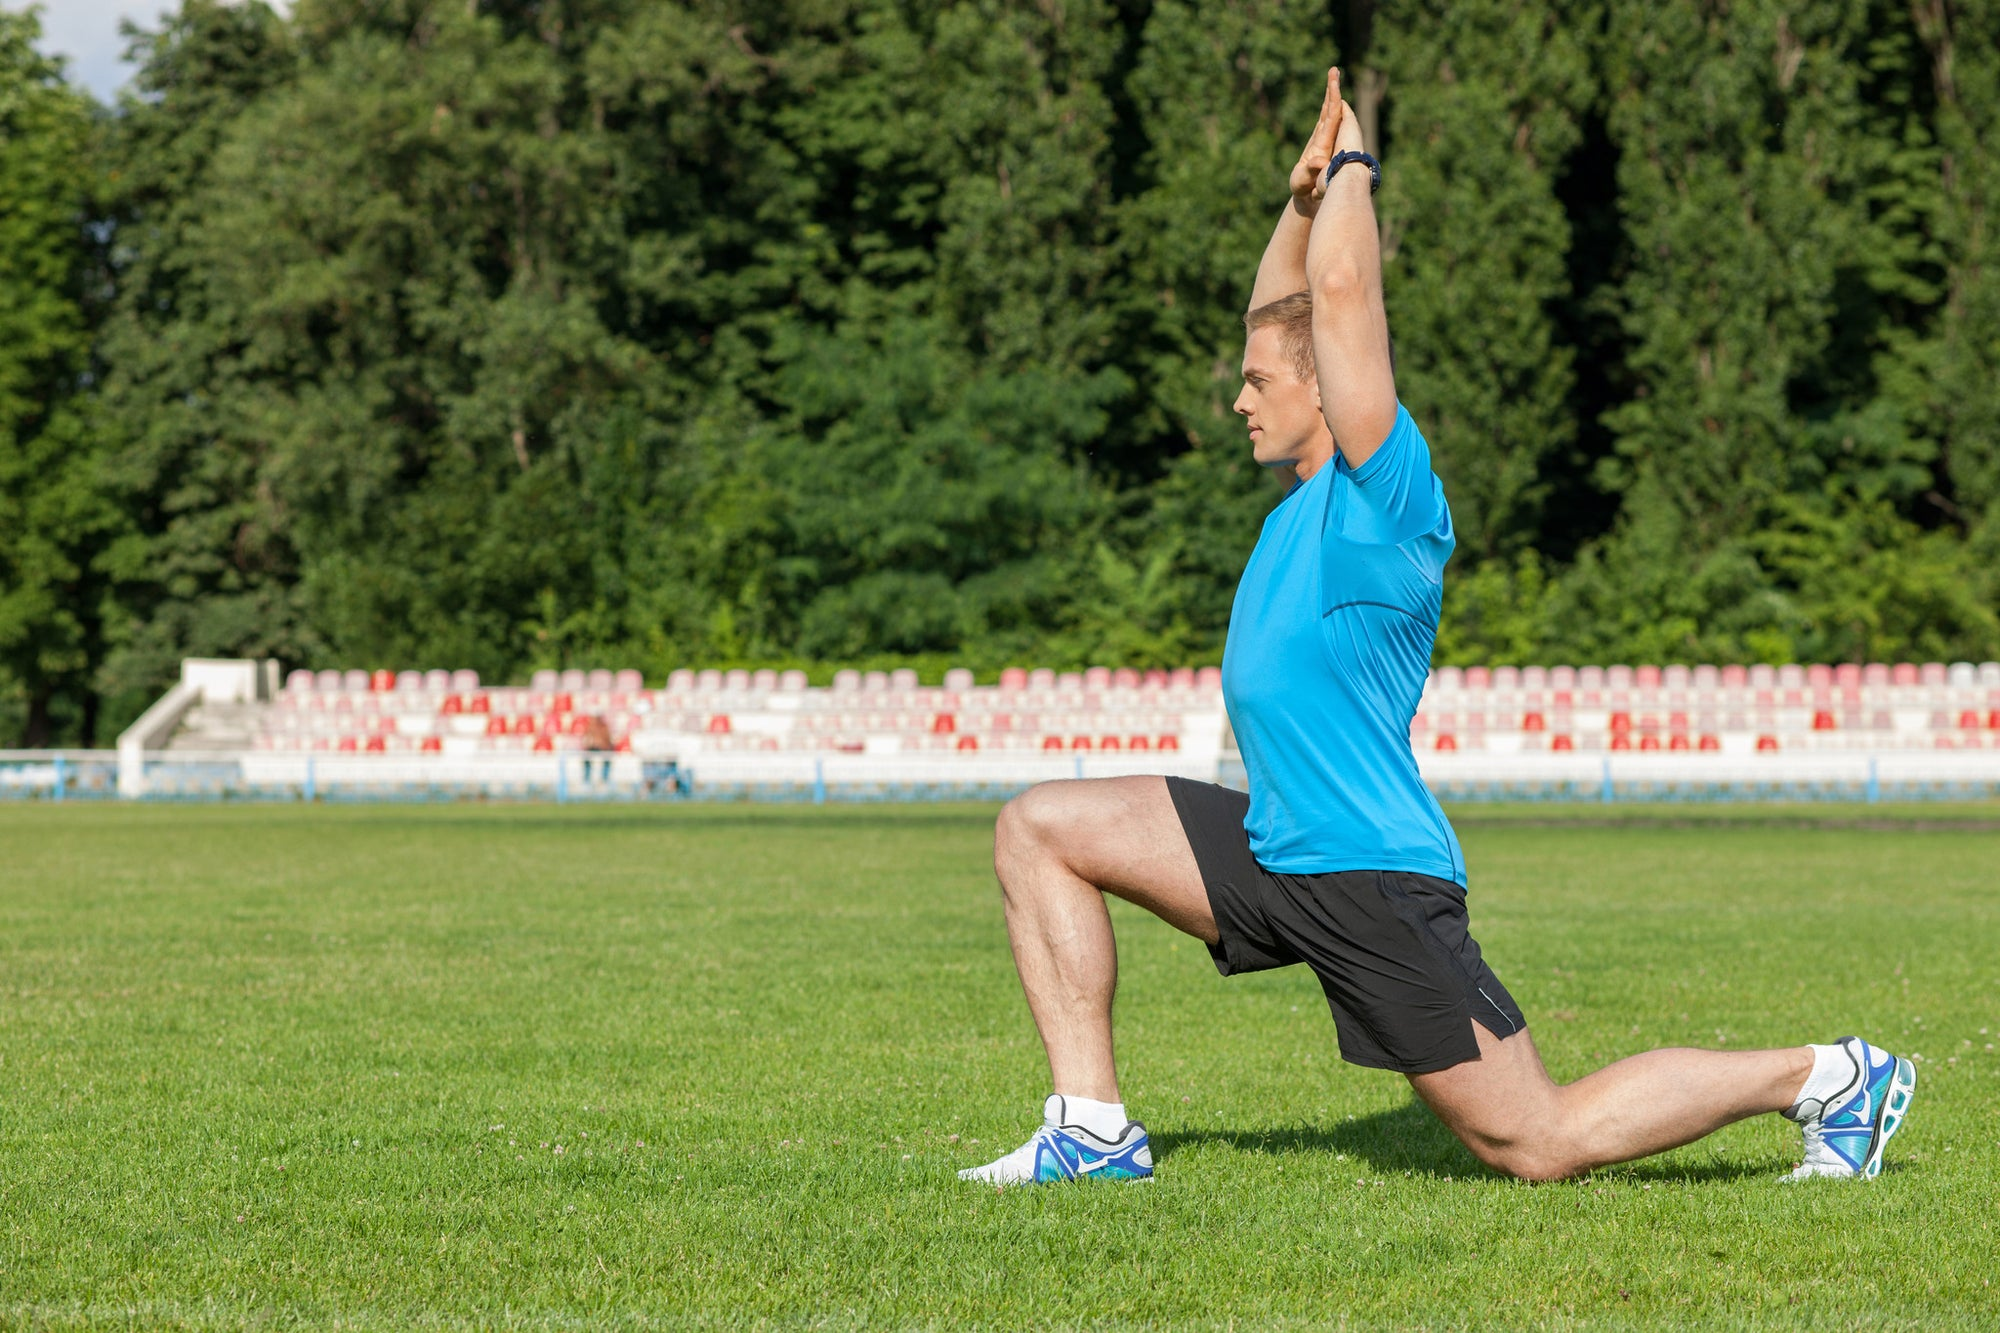 The Importance of Yoga for High Performing Athletes